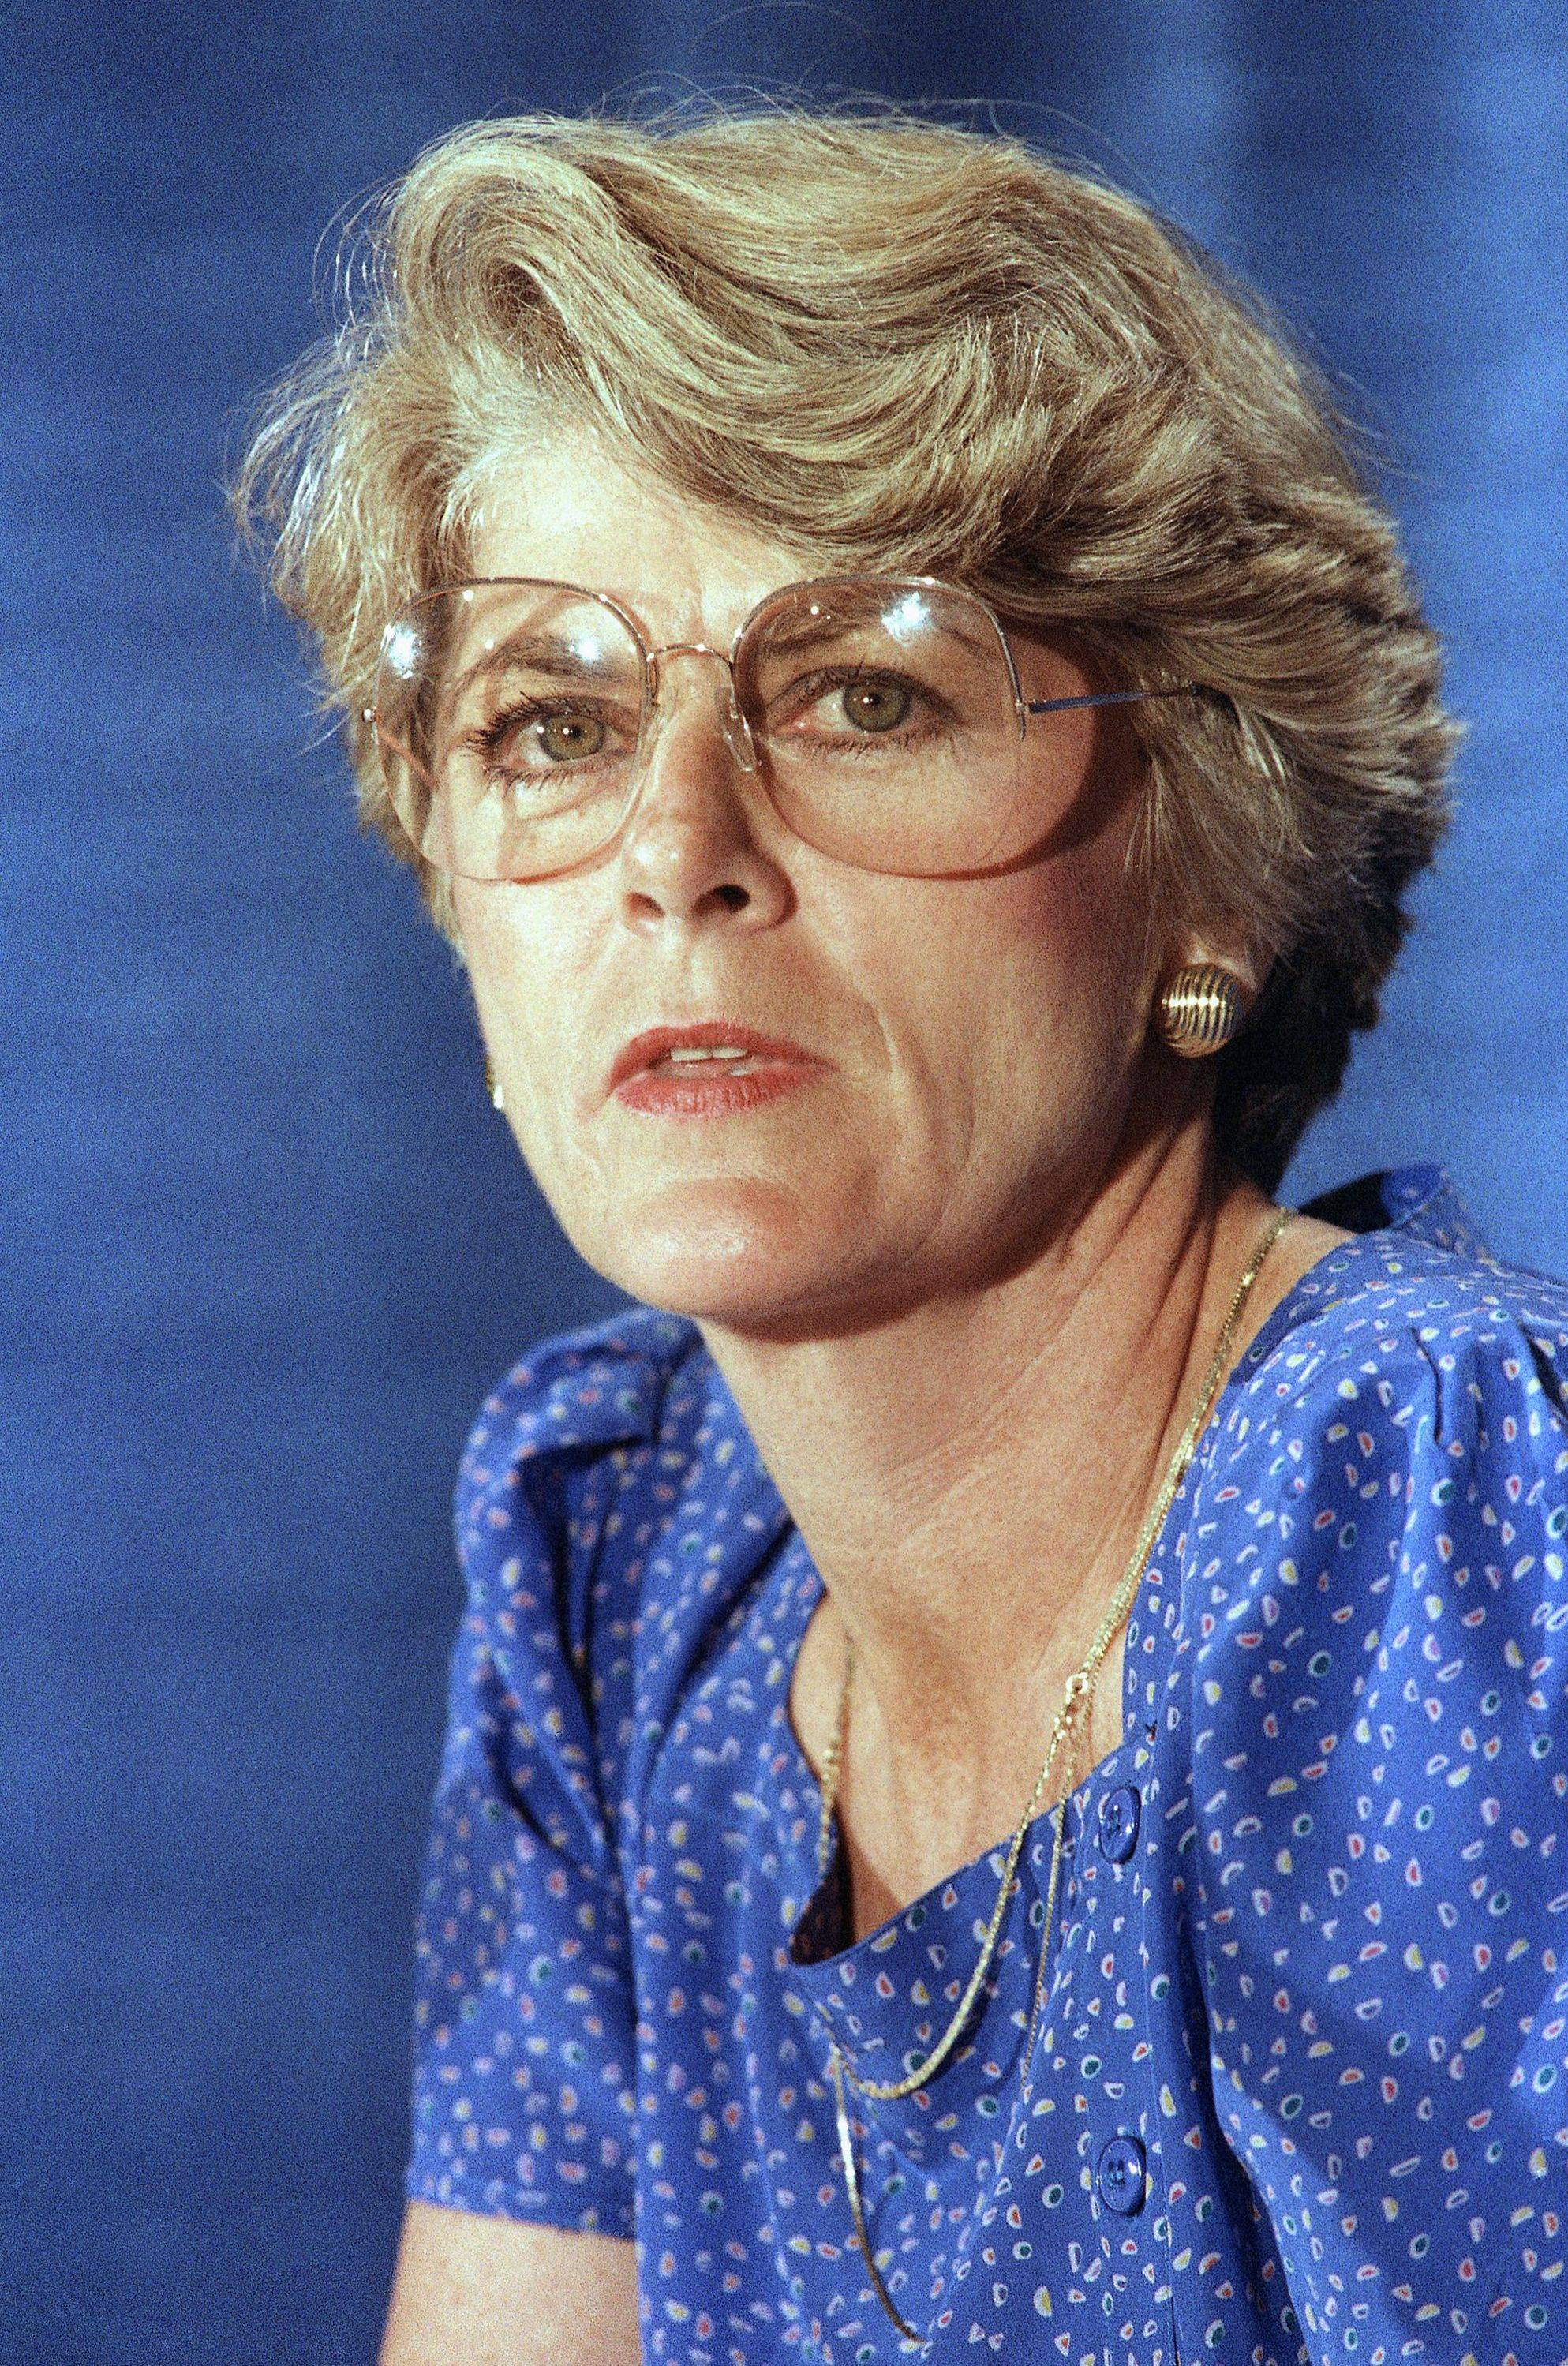 This Tuesday, Aug. 21, 1984 file picture shows Geraldine Ferraro at a news conference in New York. A spokesperson said Saturday, March 26, 2011 that Ferraro, the first woman to run for vice president, has died at 75.